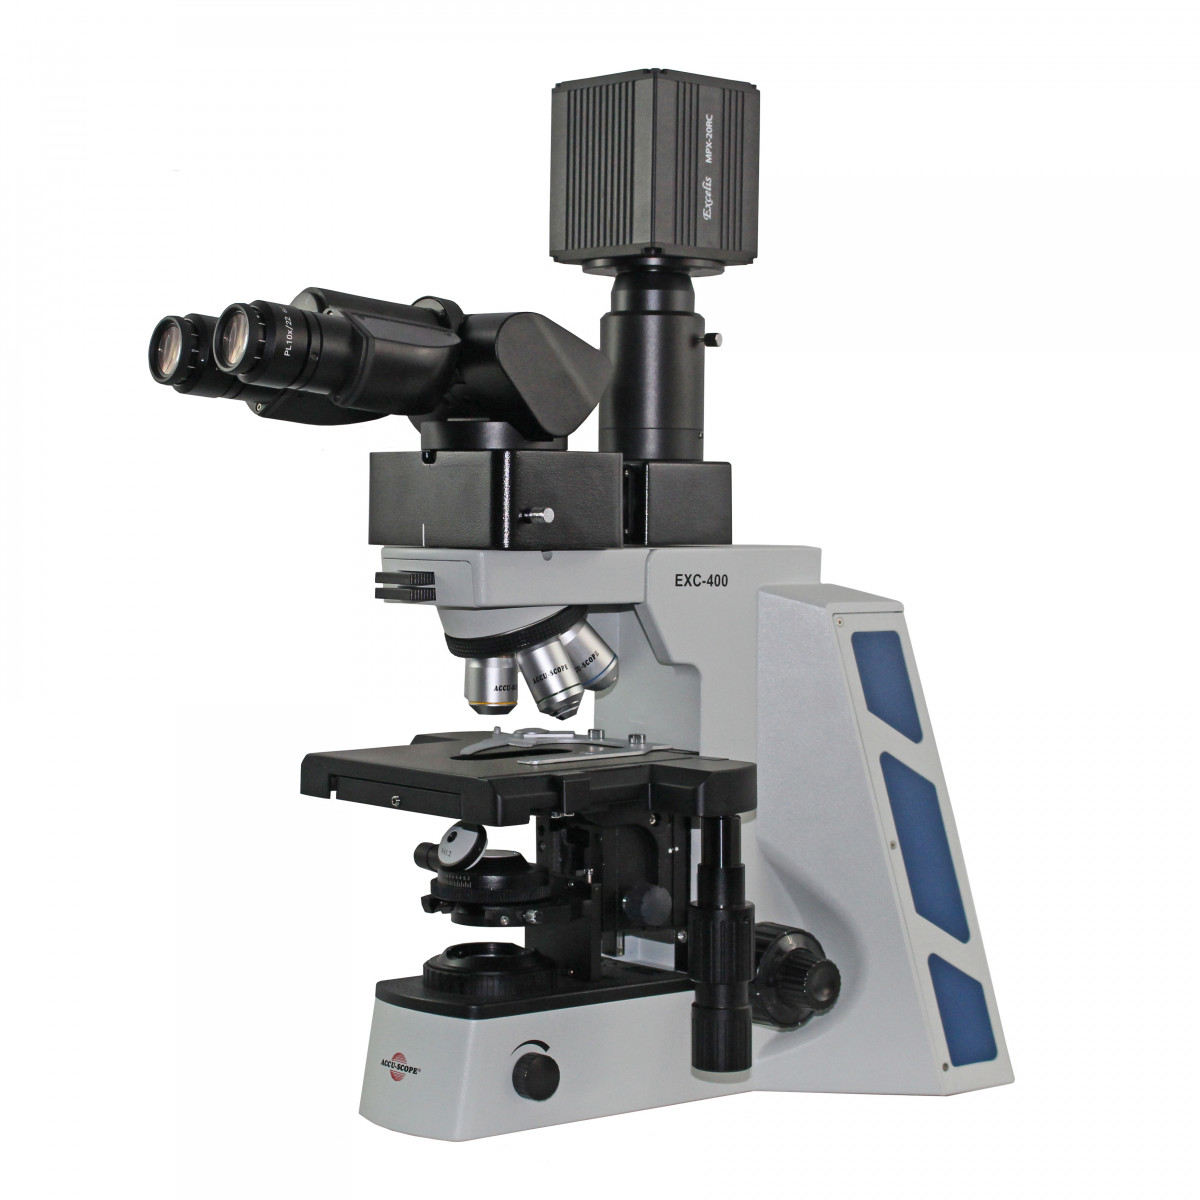 EXC-400 with ergo binocular viewing head, shown with optional camera port accessory (CAT # 400-2000-E) and camera